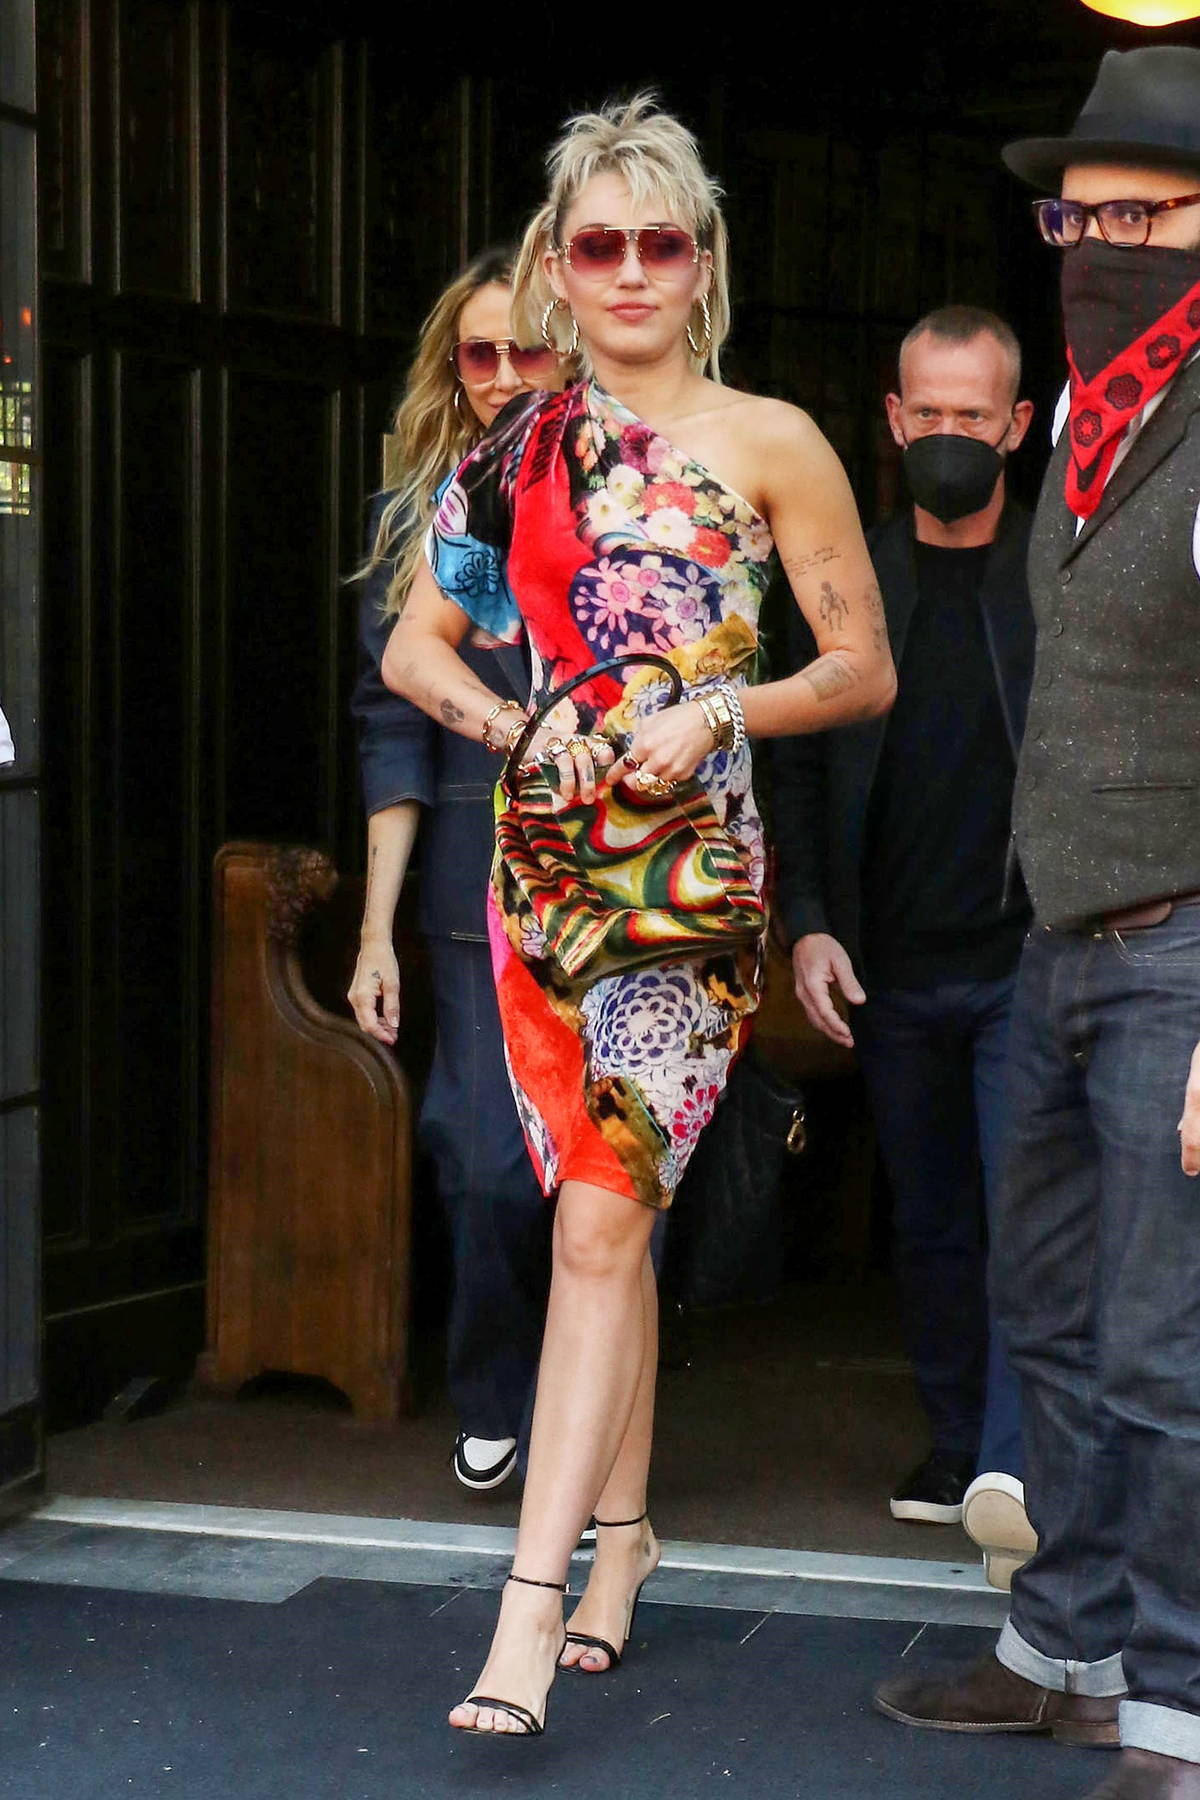 Miley Cyrus looks striking in a colorful dress as she heads out to rehearse for SNL in New York City